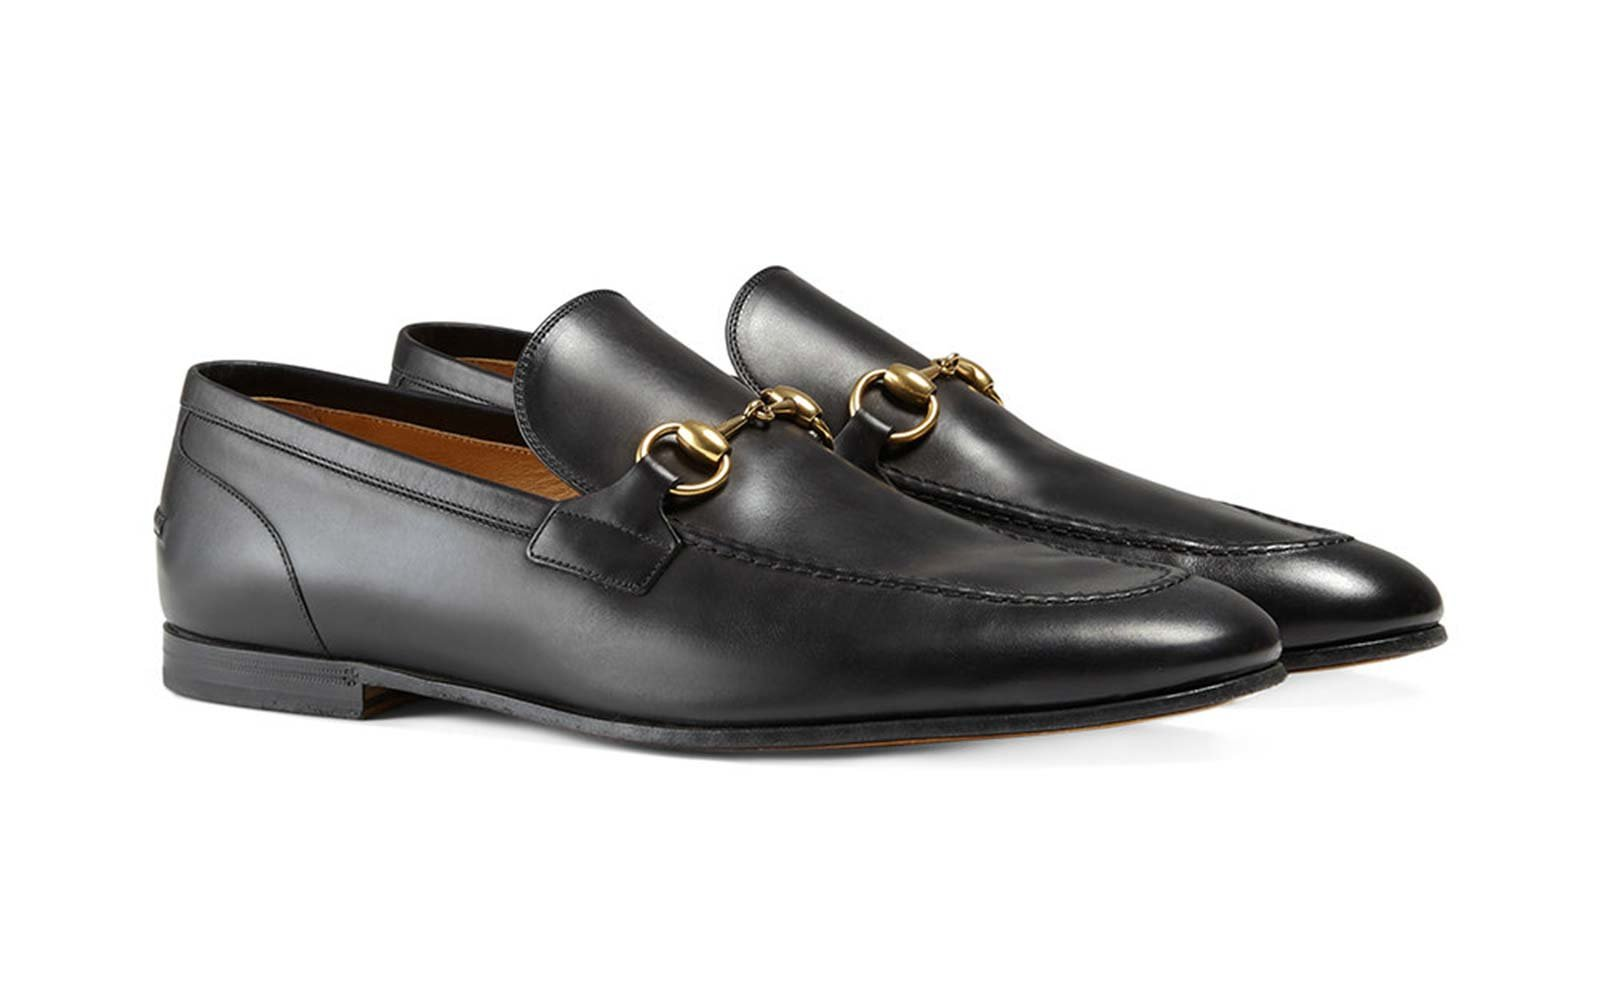 Gucci Mens Loafer Shoes